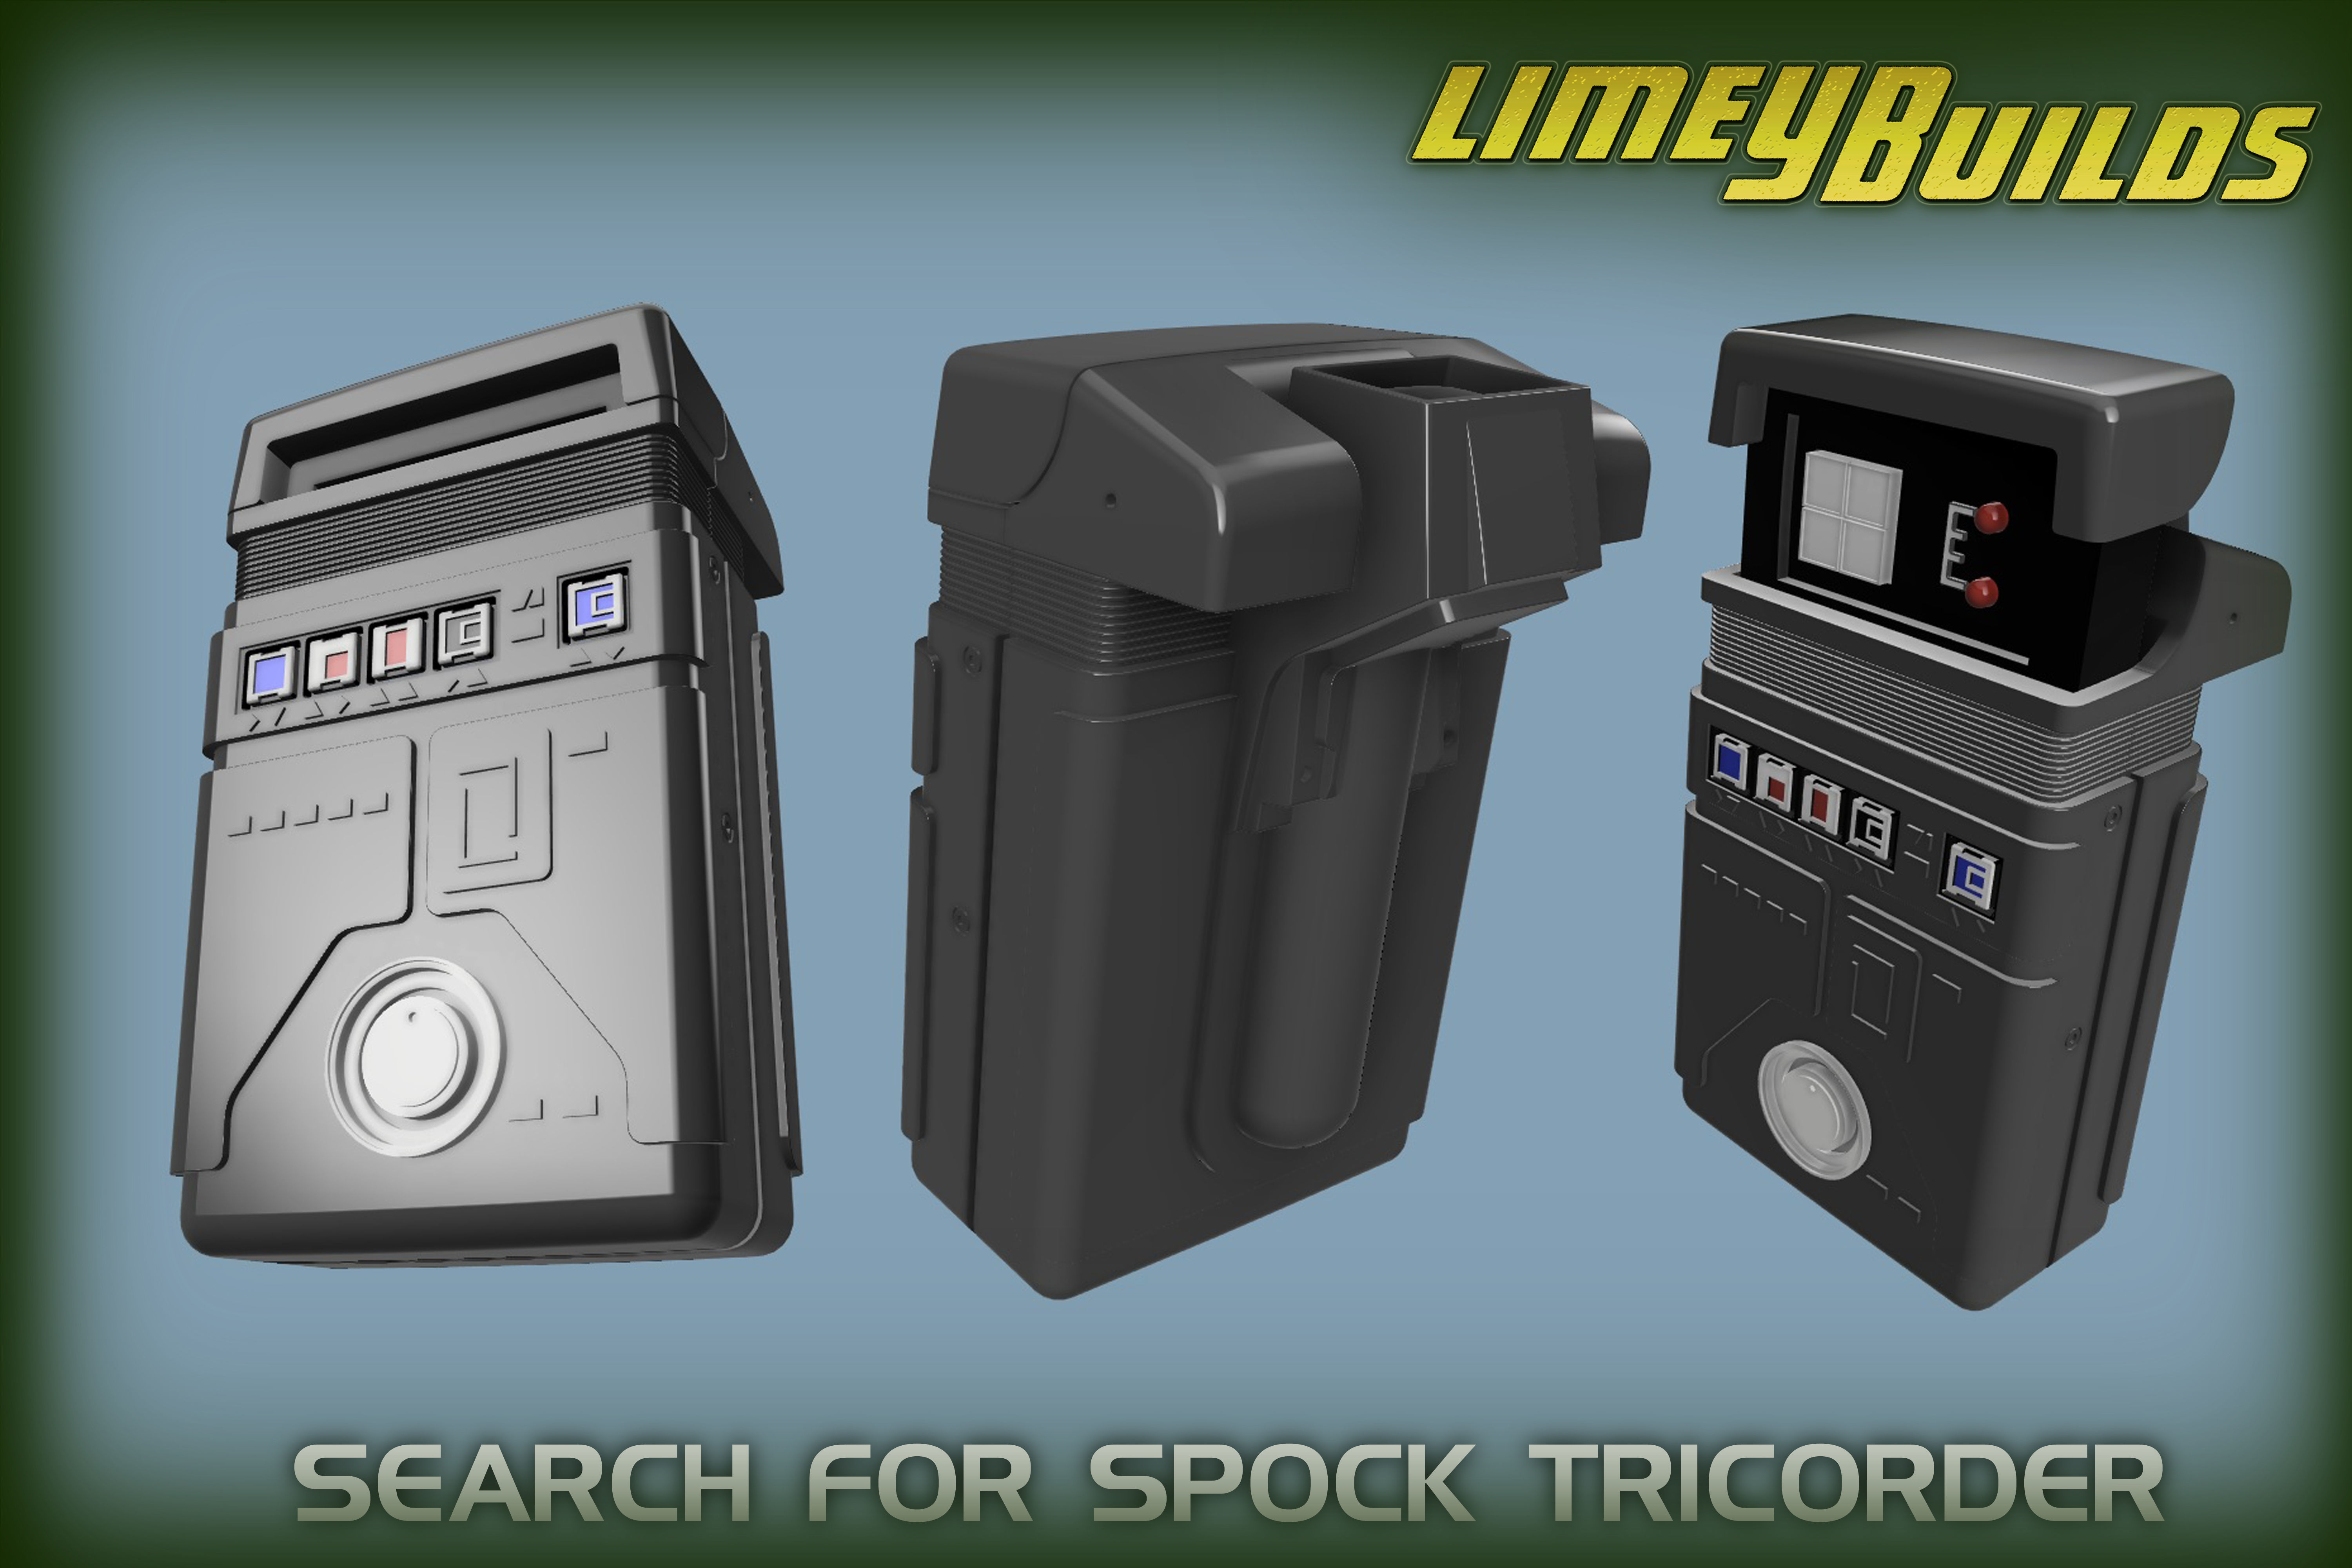 Search for Spock Tricorder